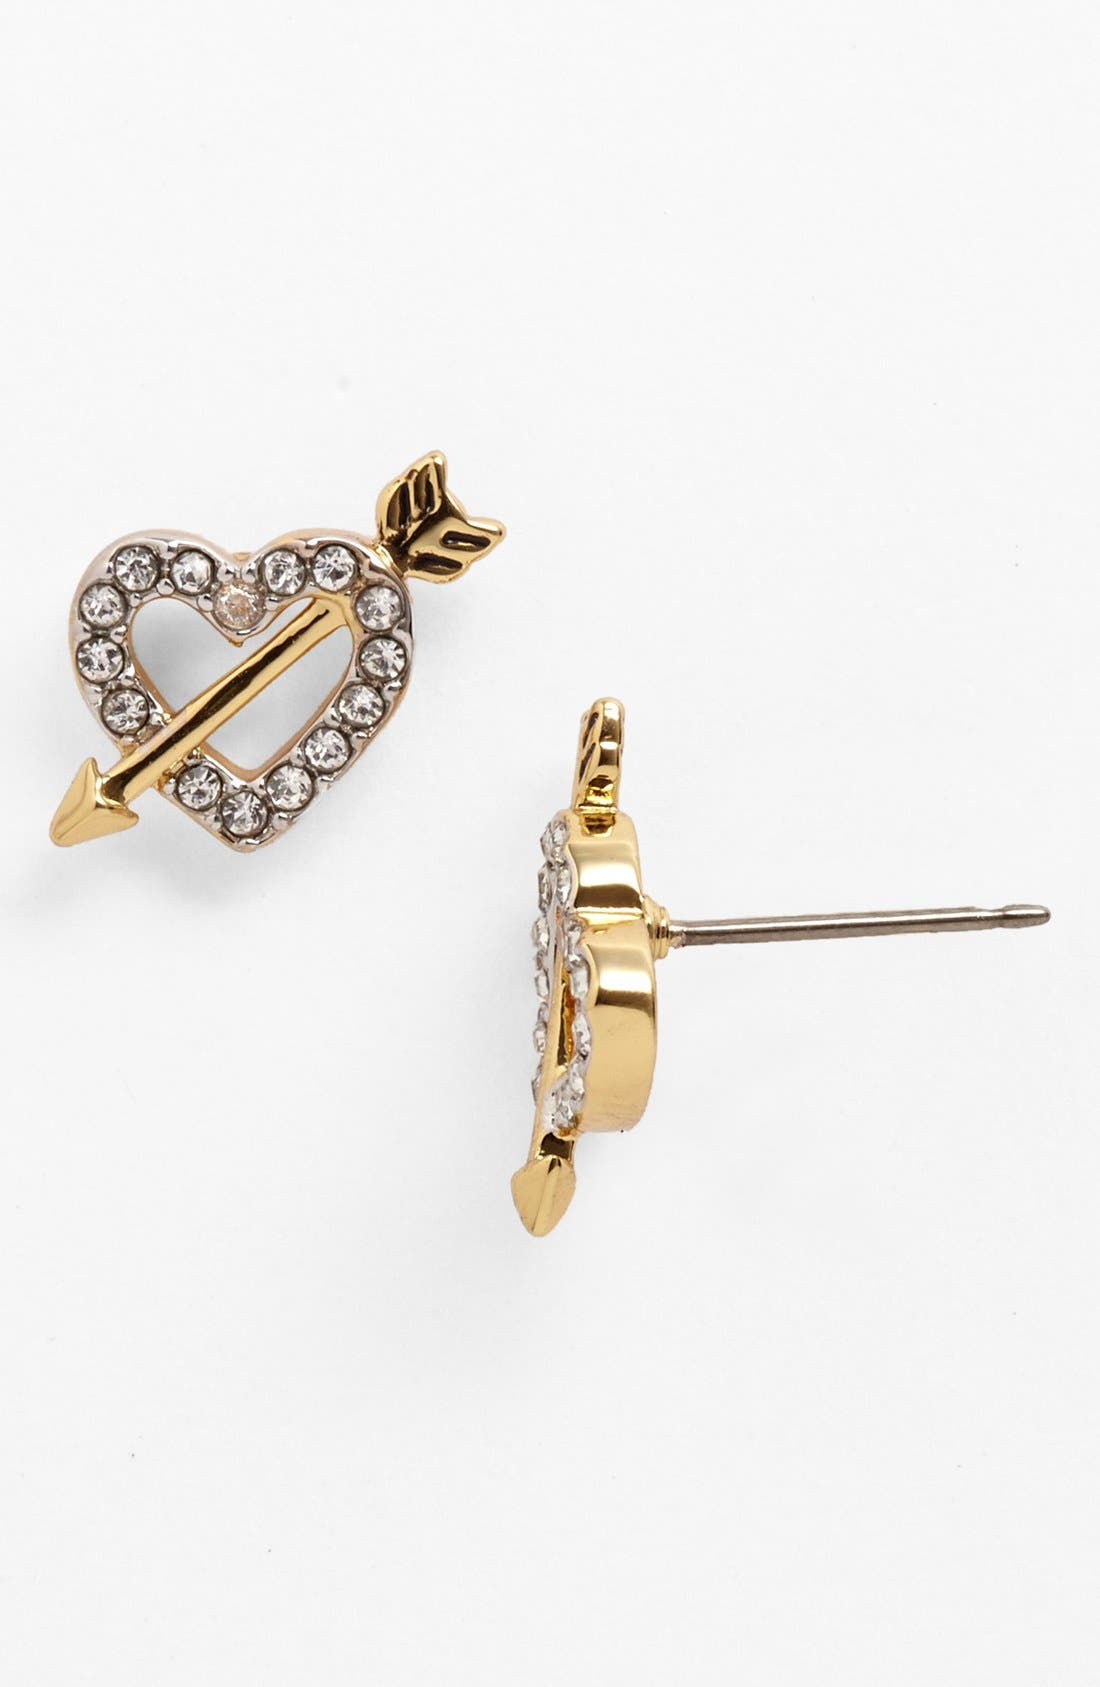 Alternate Image 1 Selected - Juicy Couture 'Juicy at Heart' Heart & Arrow Stud Earrings